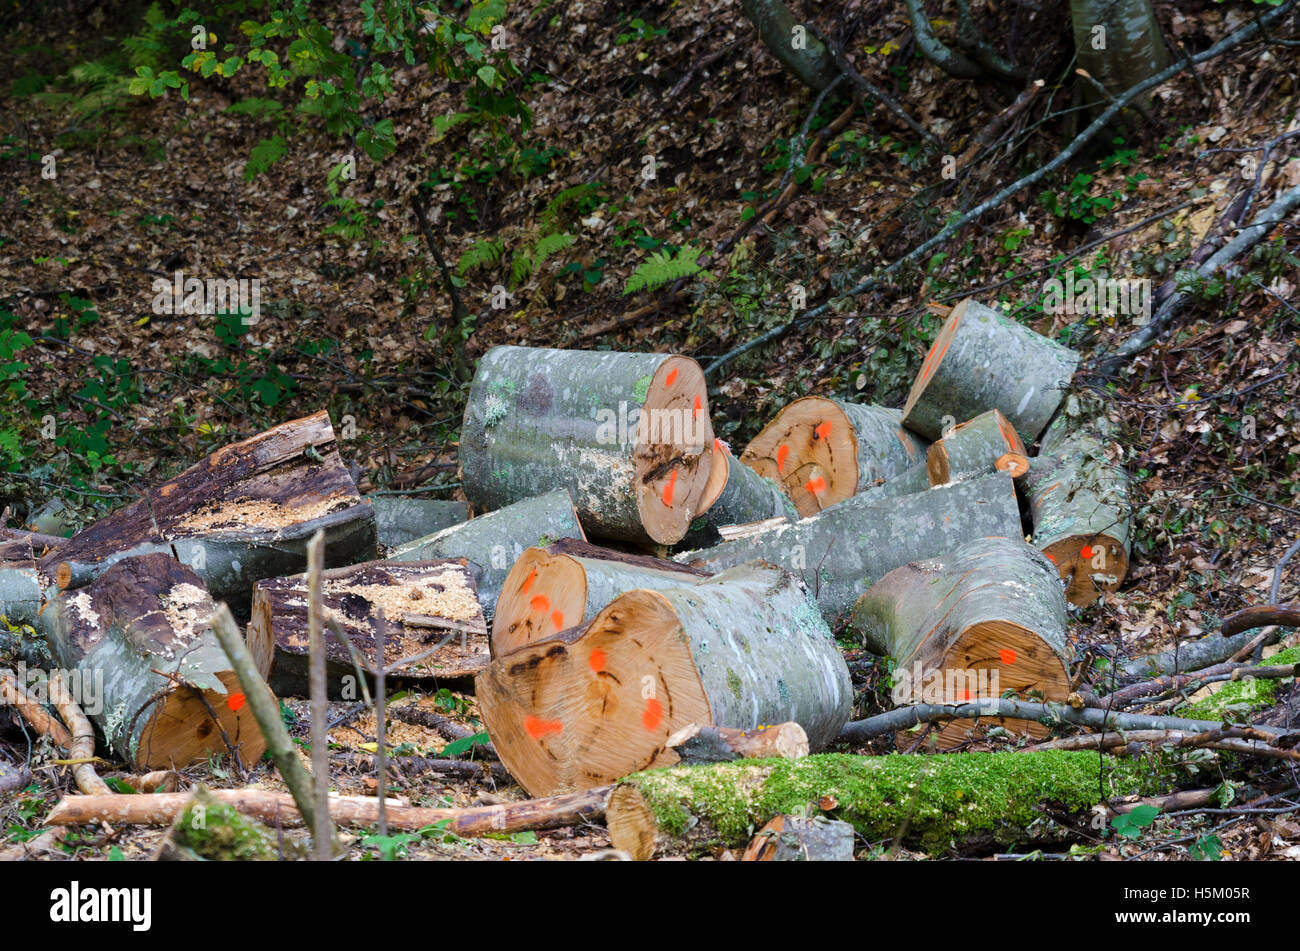 Logs in a forest.  Lumber industry - Stock Image